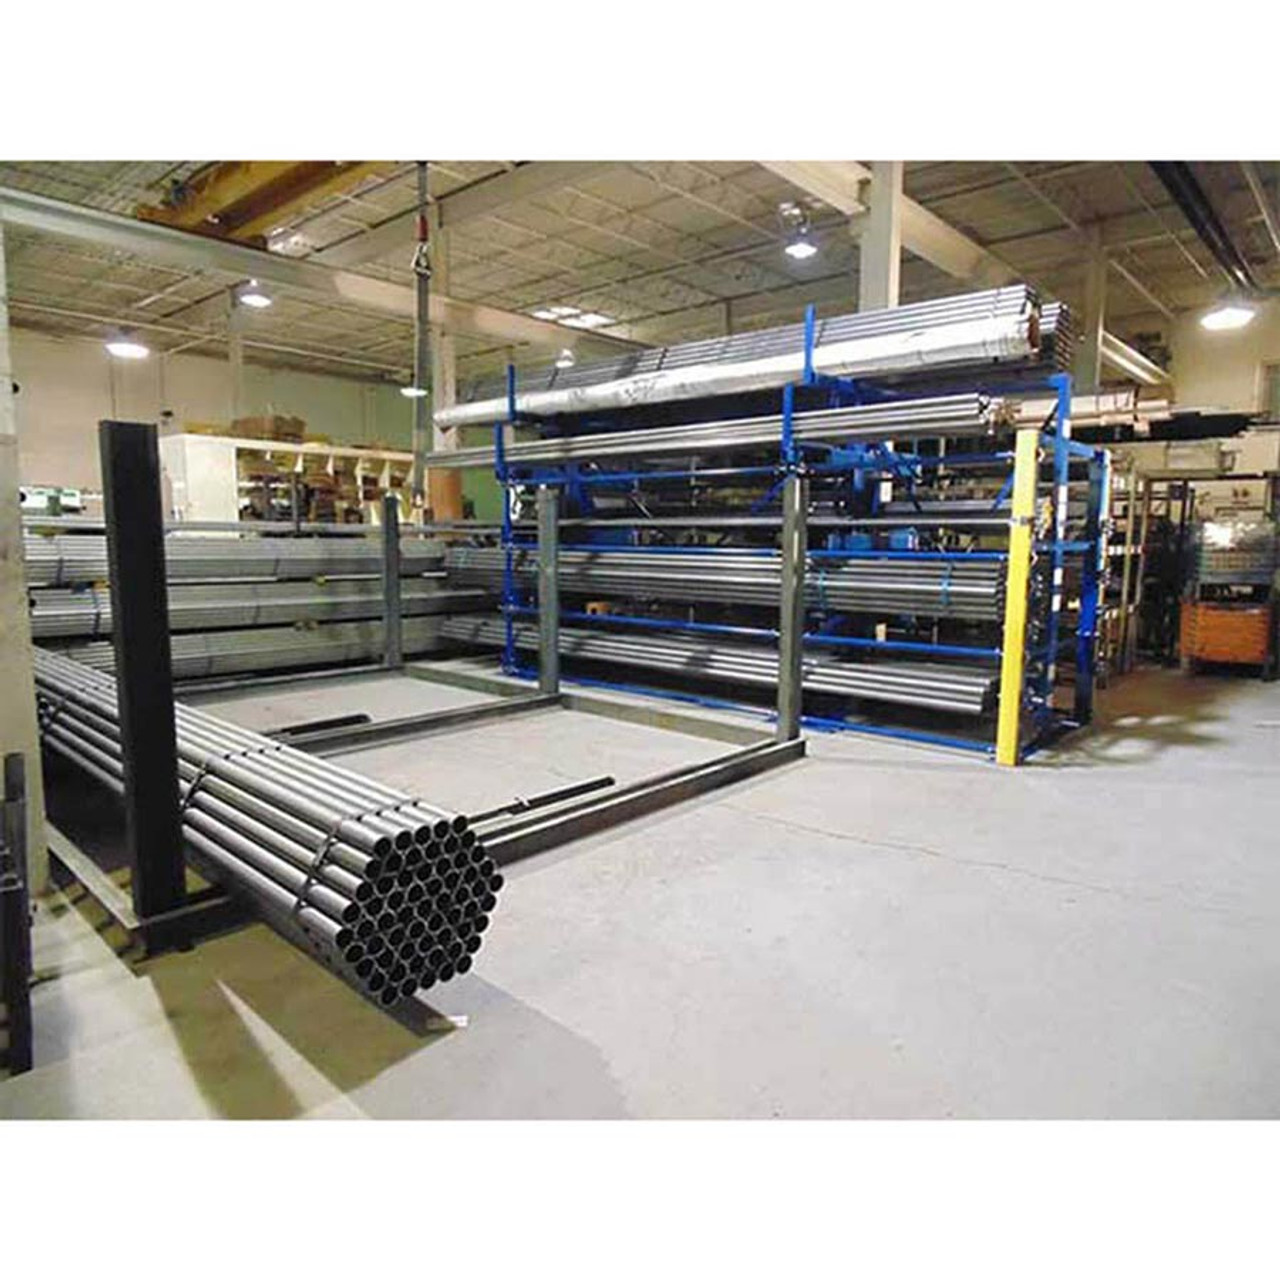 Crank-Out Cantilever Racking In Action